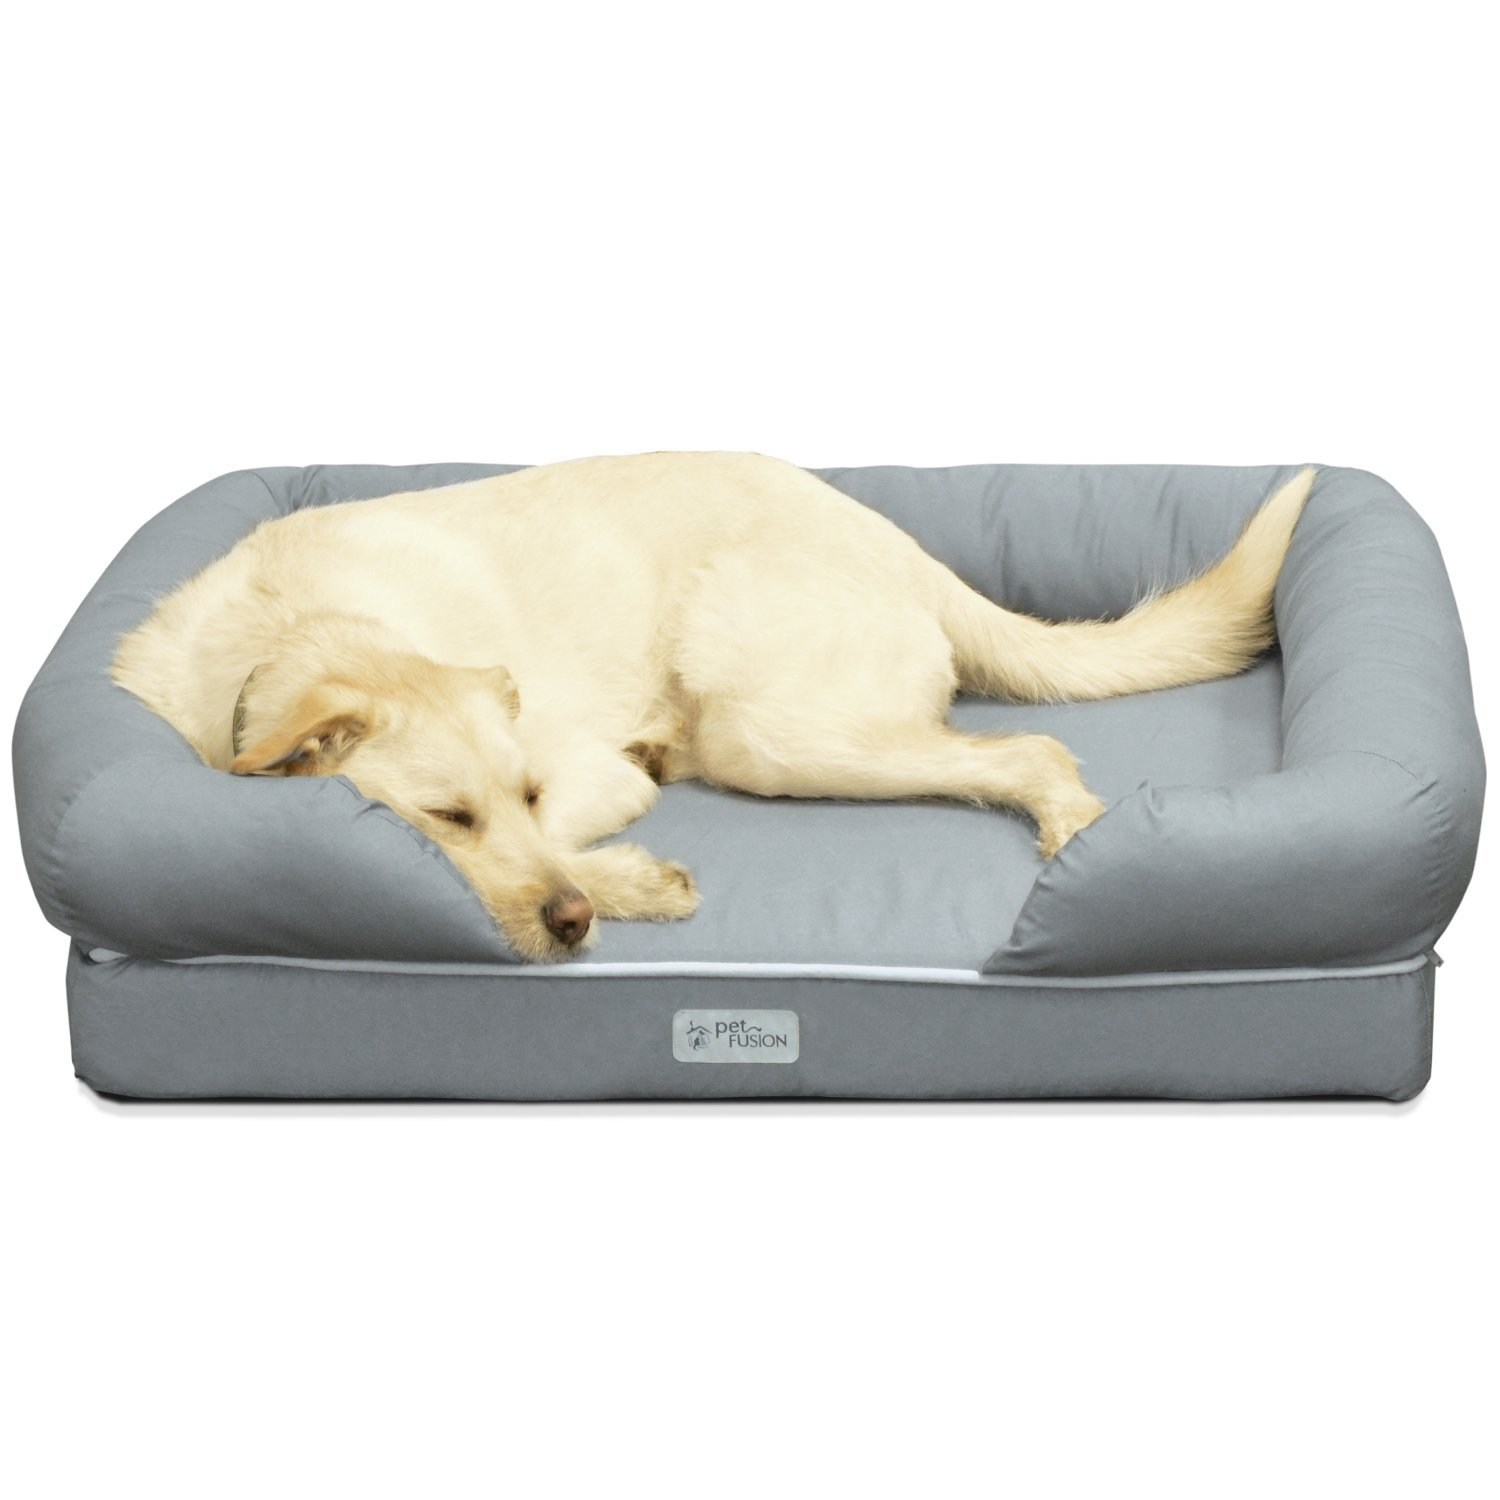 Petfusion Ultimate Pet Bed & Lounge